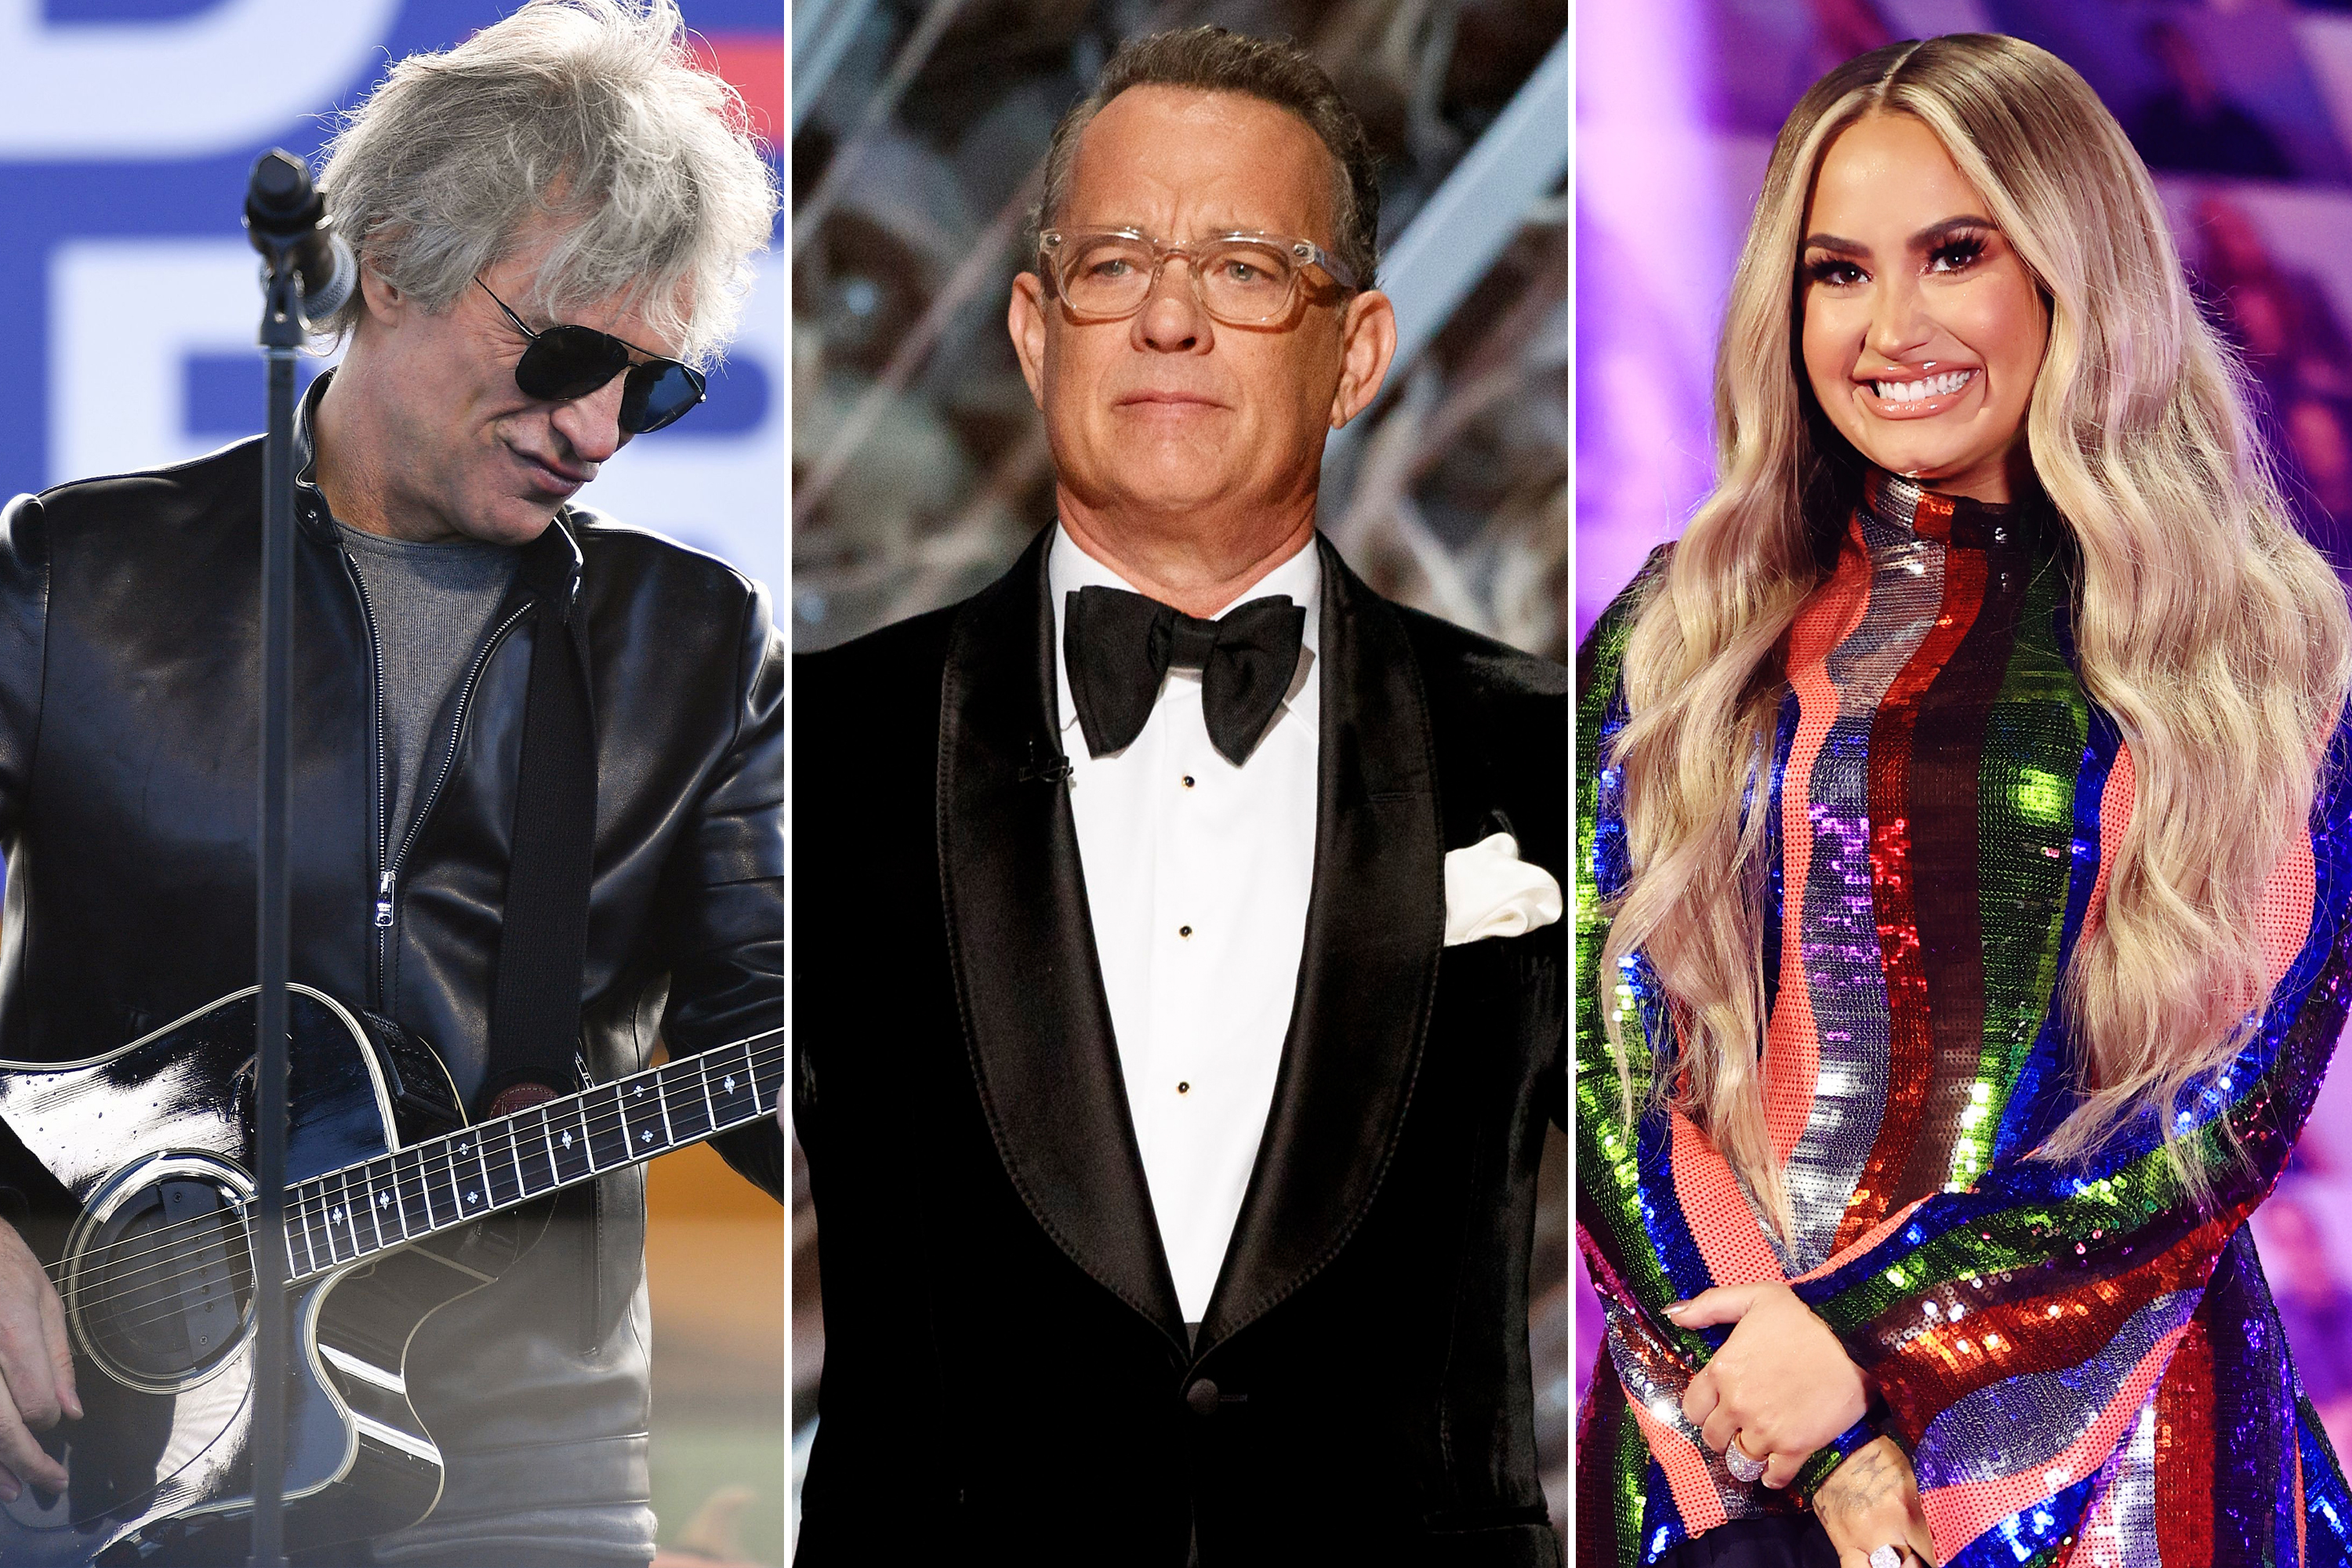 Tom Hanks to host inaugural special with Bon Jovi, Demi Lovato